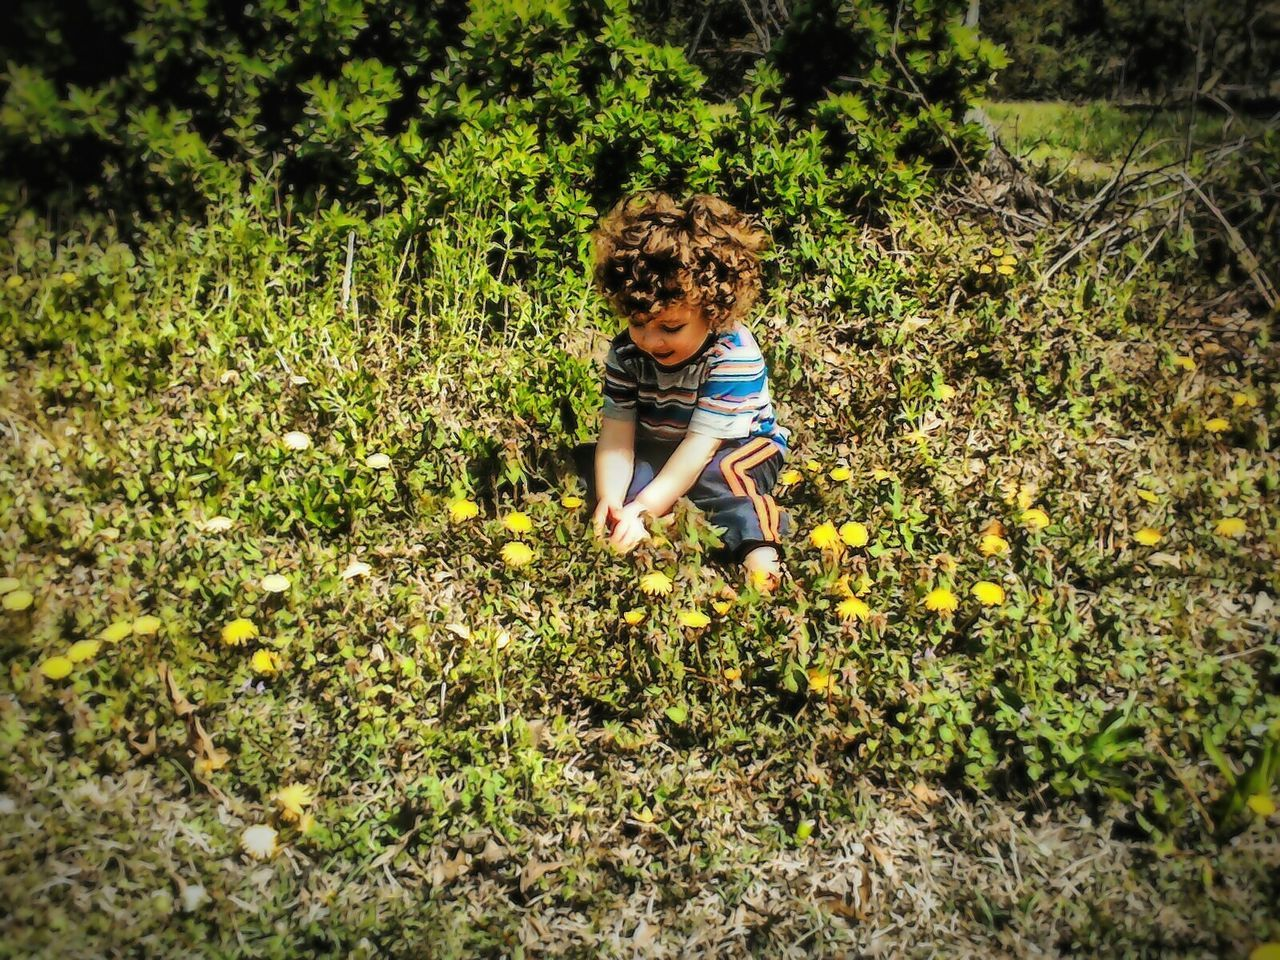 childhood, growth, real people, one person, plant, nature, full length, leisure activity, field, day, boys, casual clothing, flower, outdoors, elementary age, lifestyles, beauty in nature, curly hair, grass, tree, freshness, people